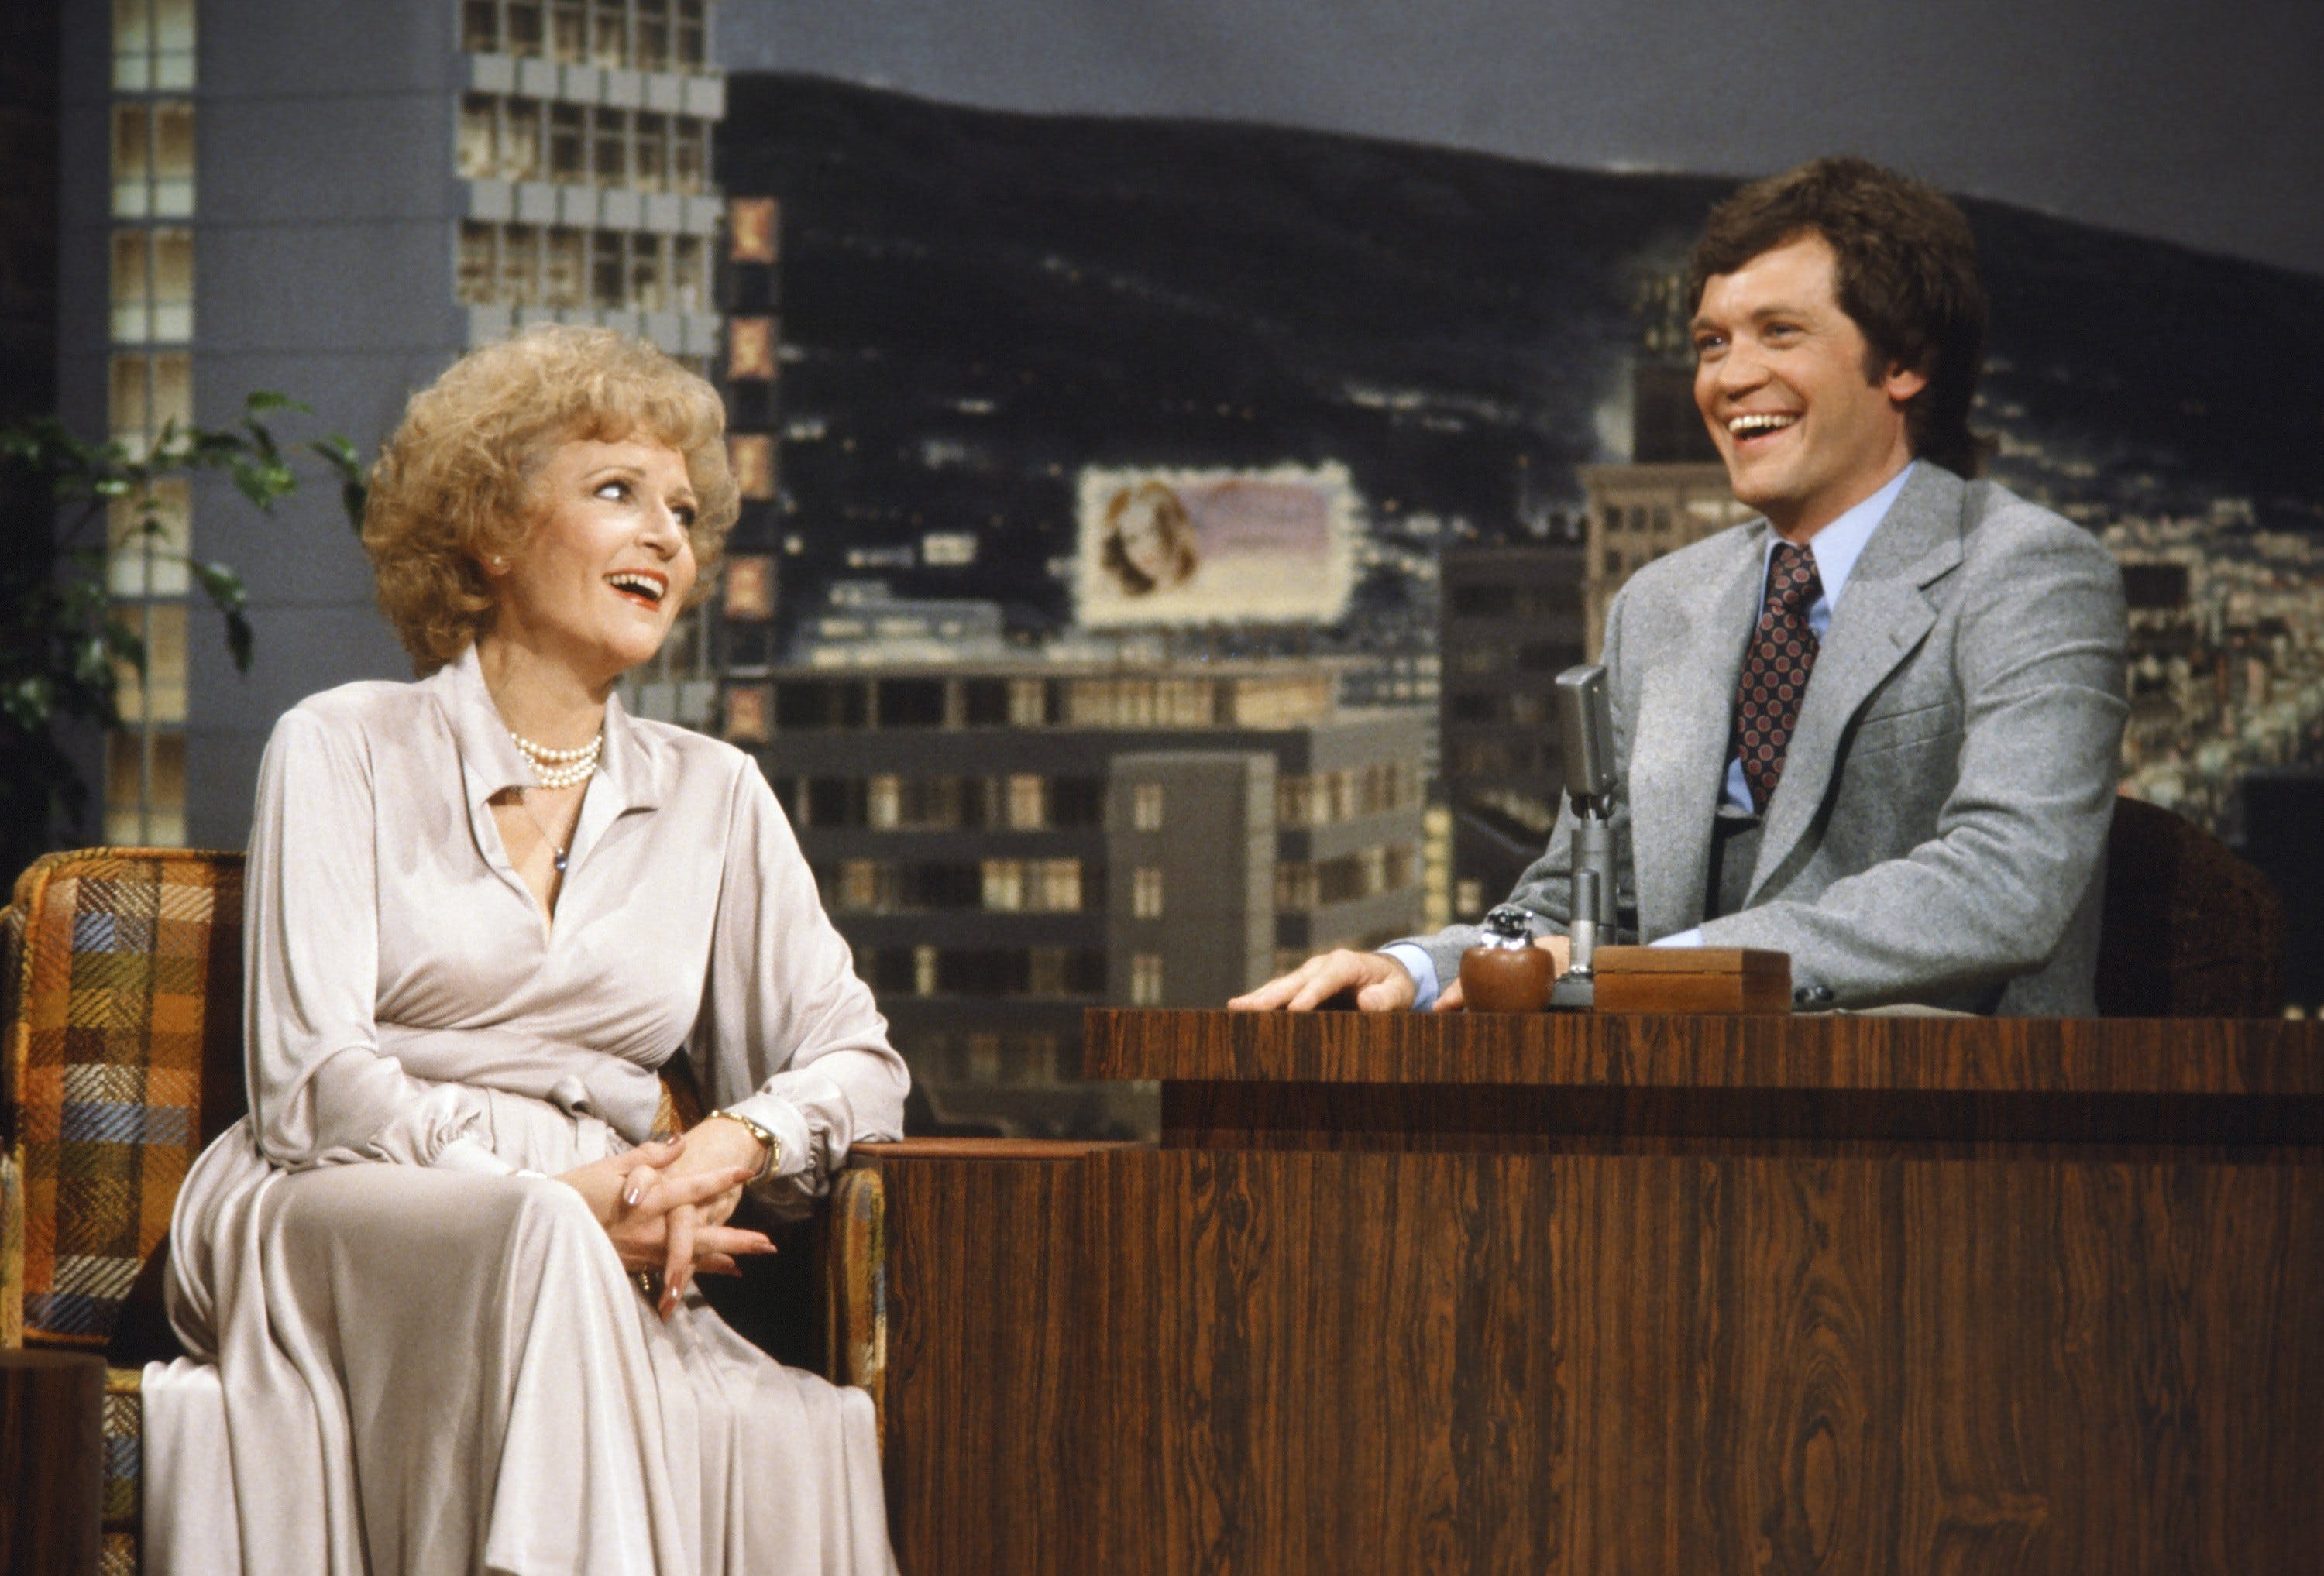 1979 guest on the Tonight Show starring Johnny Carson  age 57